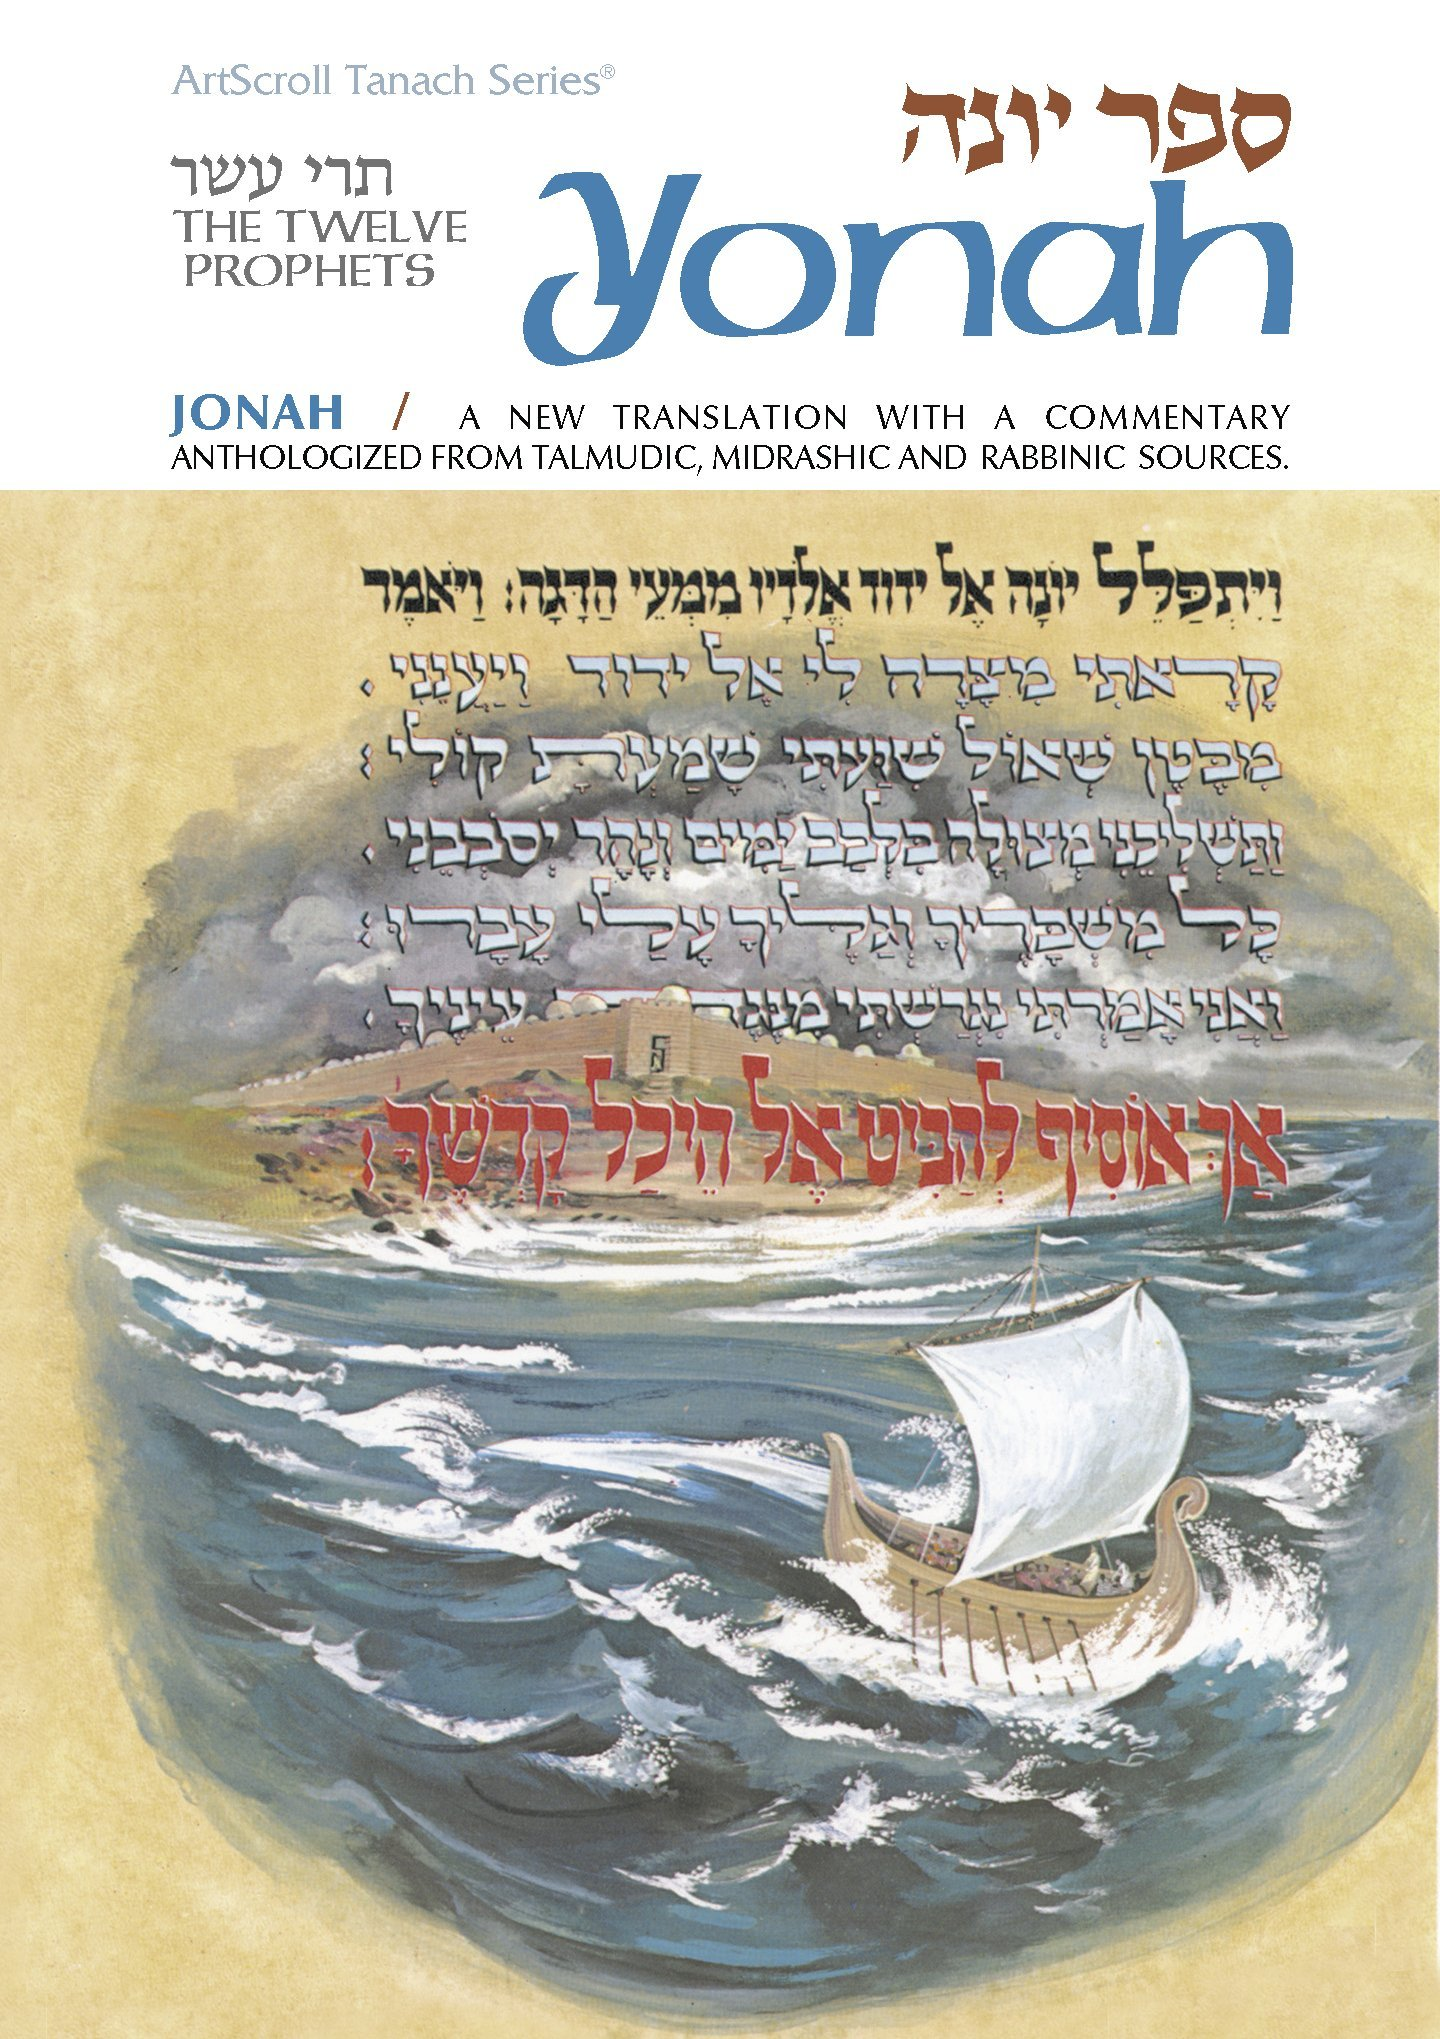 Jonah / Yonah: A New Translation With a Commentary Anthologized from Talmudic, Midrashic and Rabbinic Sources (The Twelve Prophets) (English and Hebrew Edition) pdf